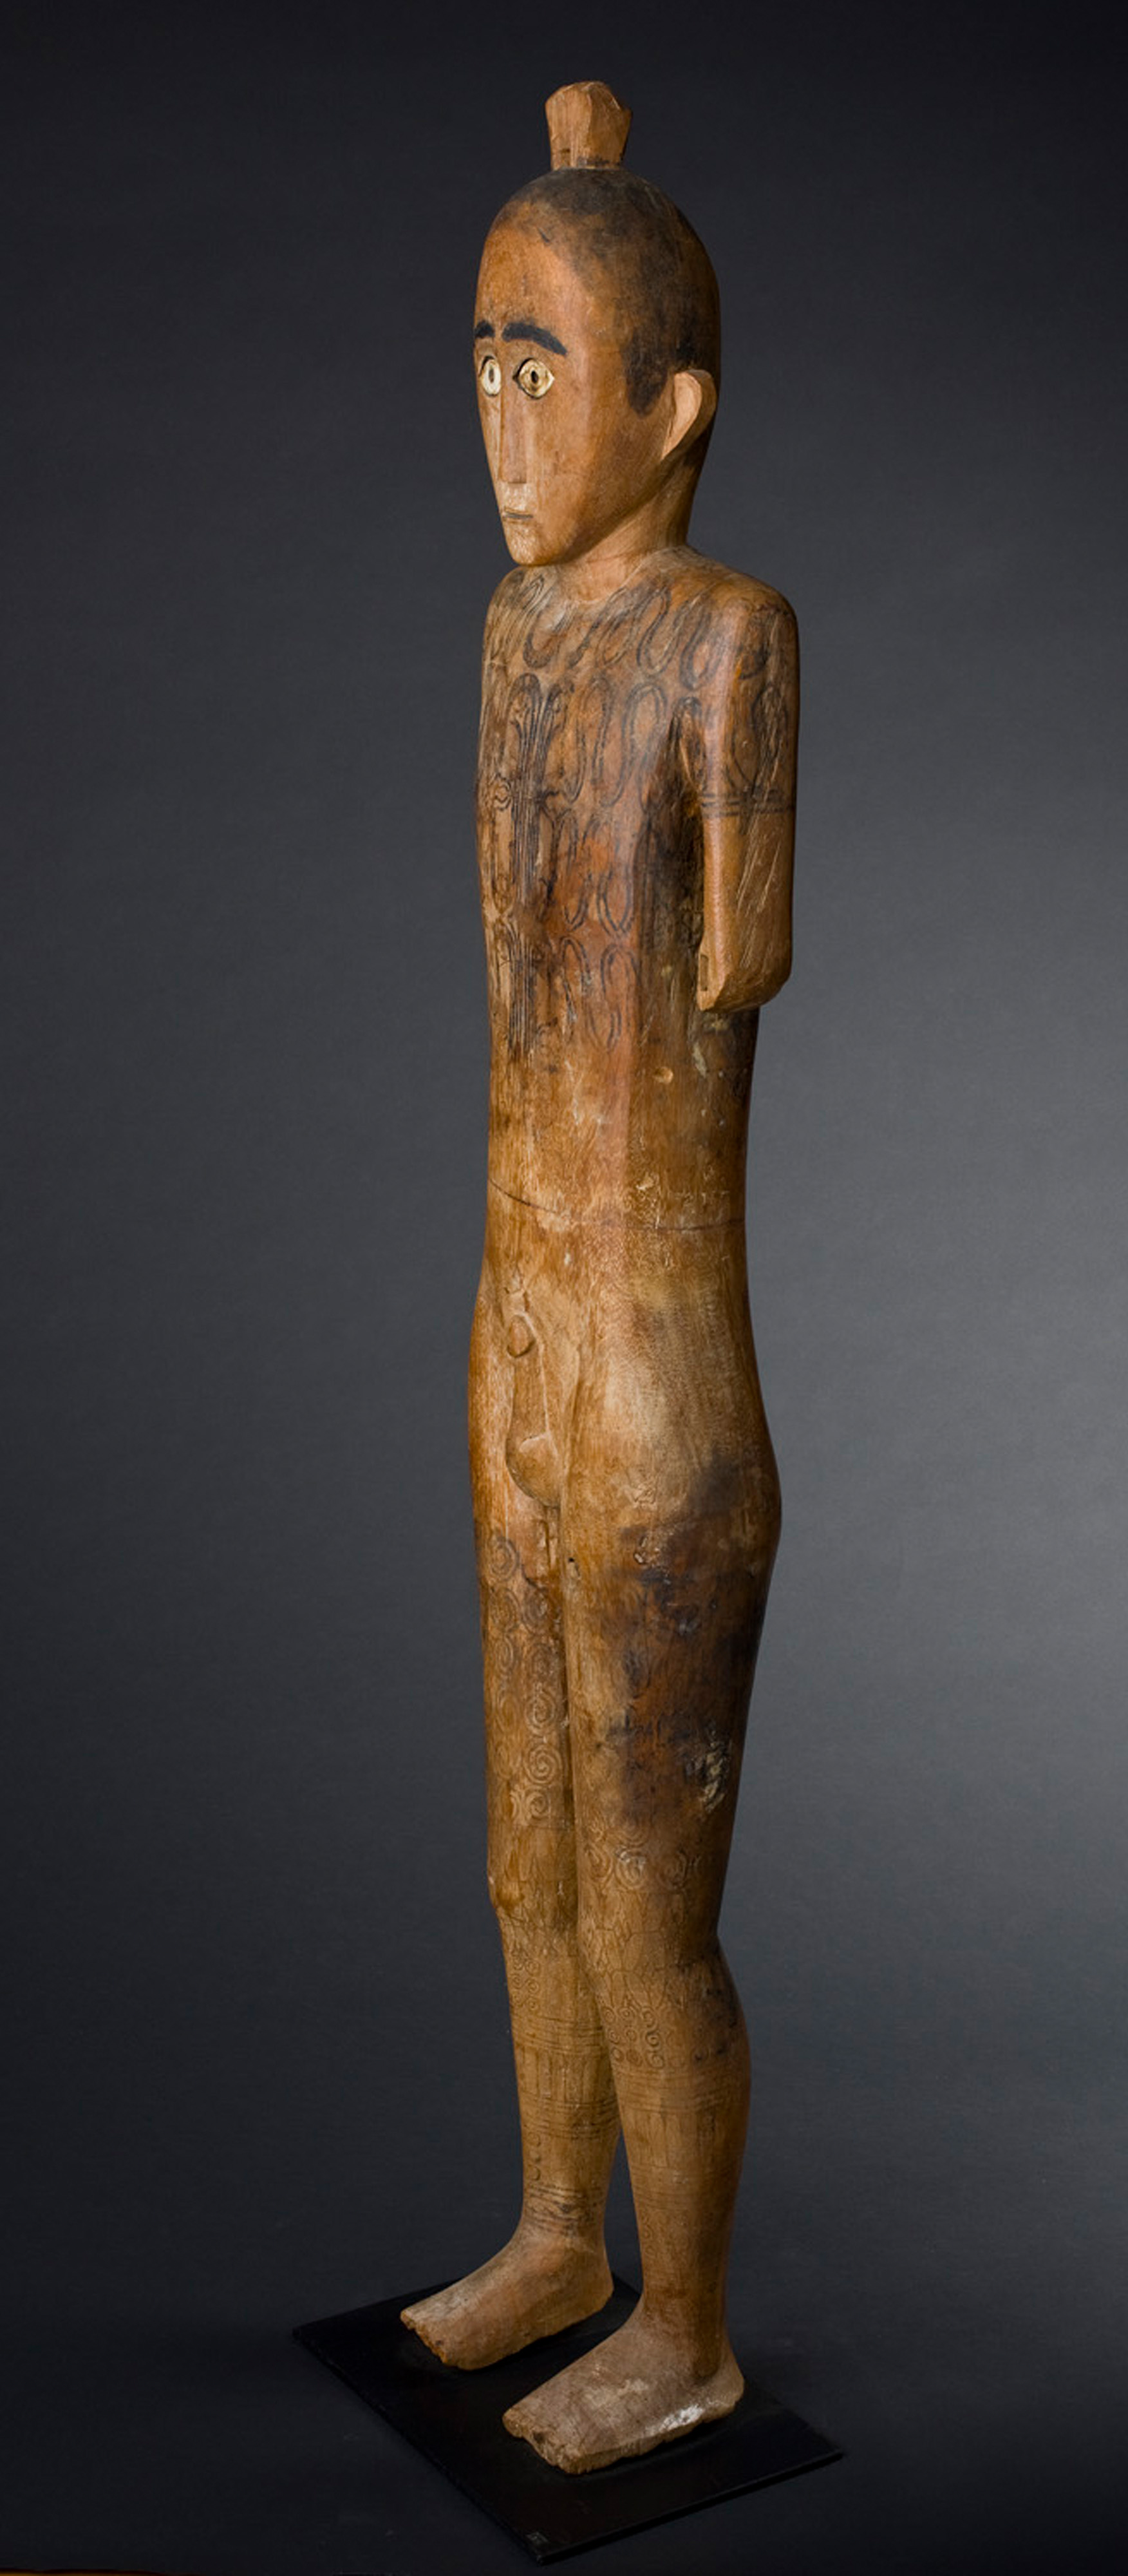 Tau Tau Figure, Toraja, Sulawesi Island, Indonesia 19th C